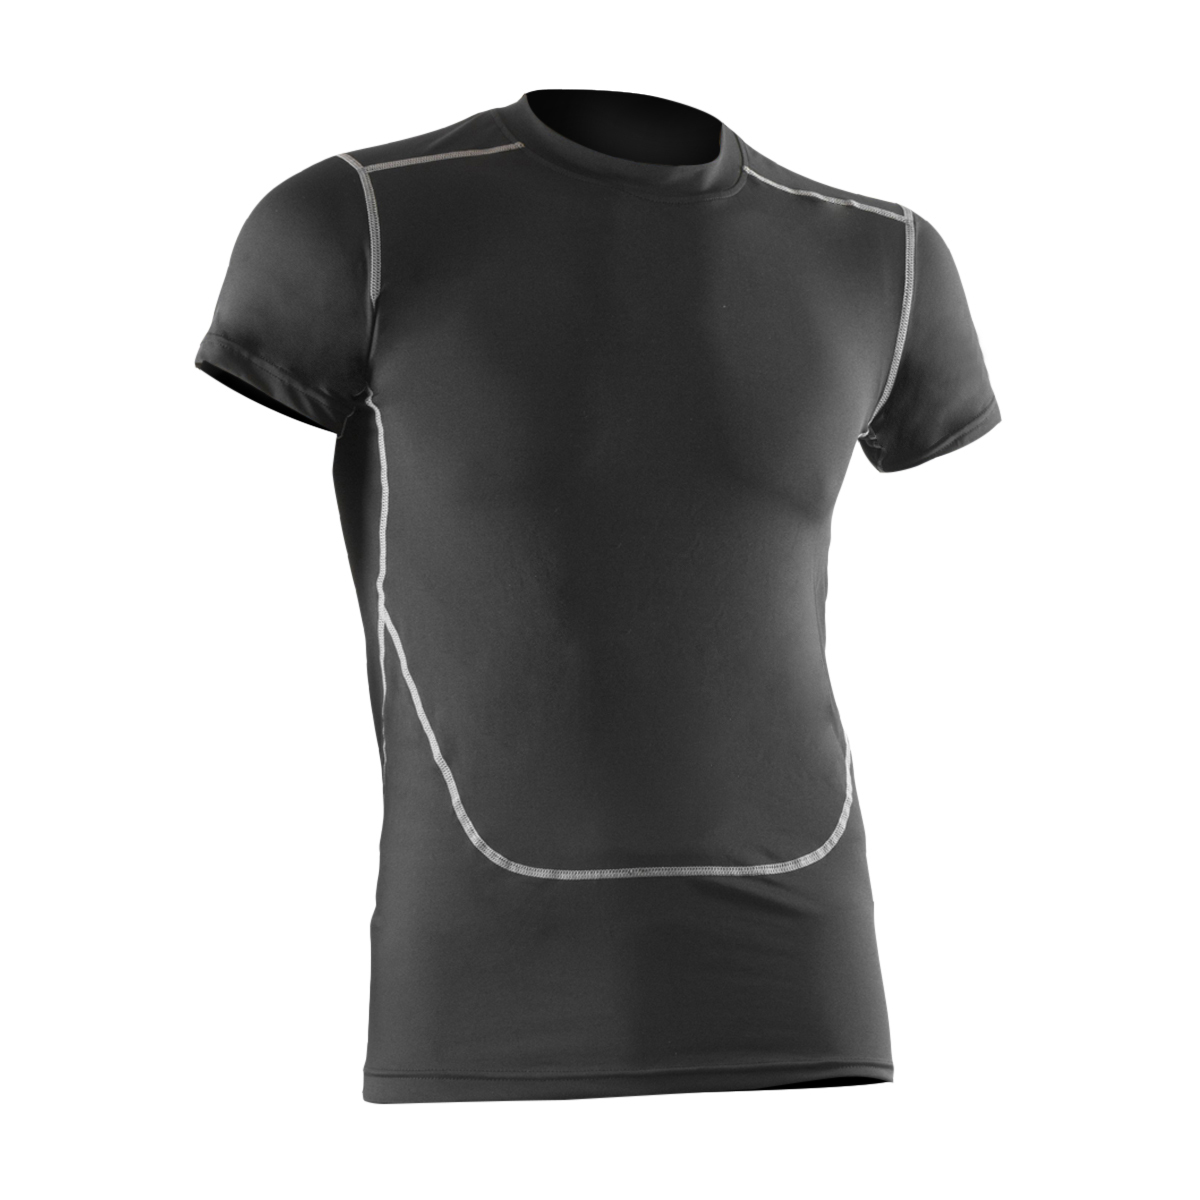 e8e60693e57 Details about Mens Thermal Compression Base Layer T-Shirt Short Sleeve Tops  Tight Wear - Large